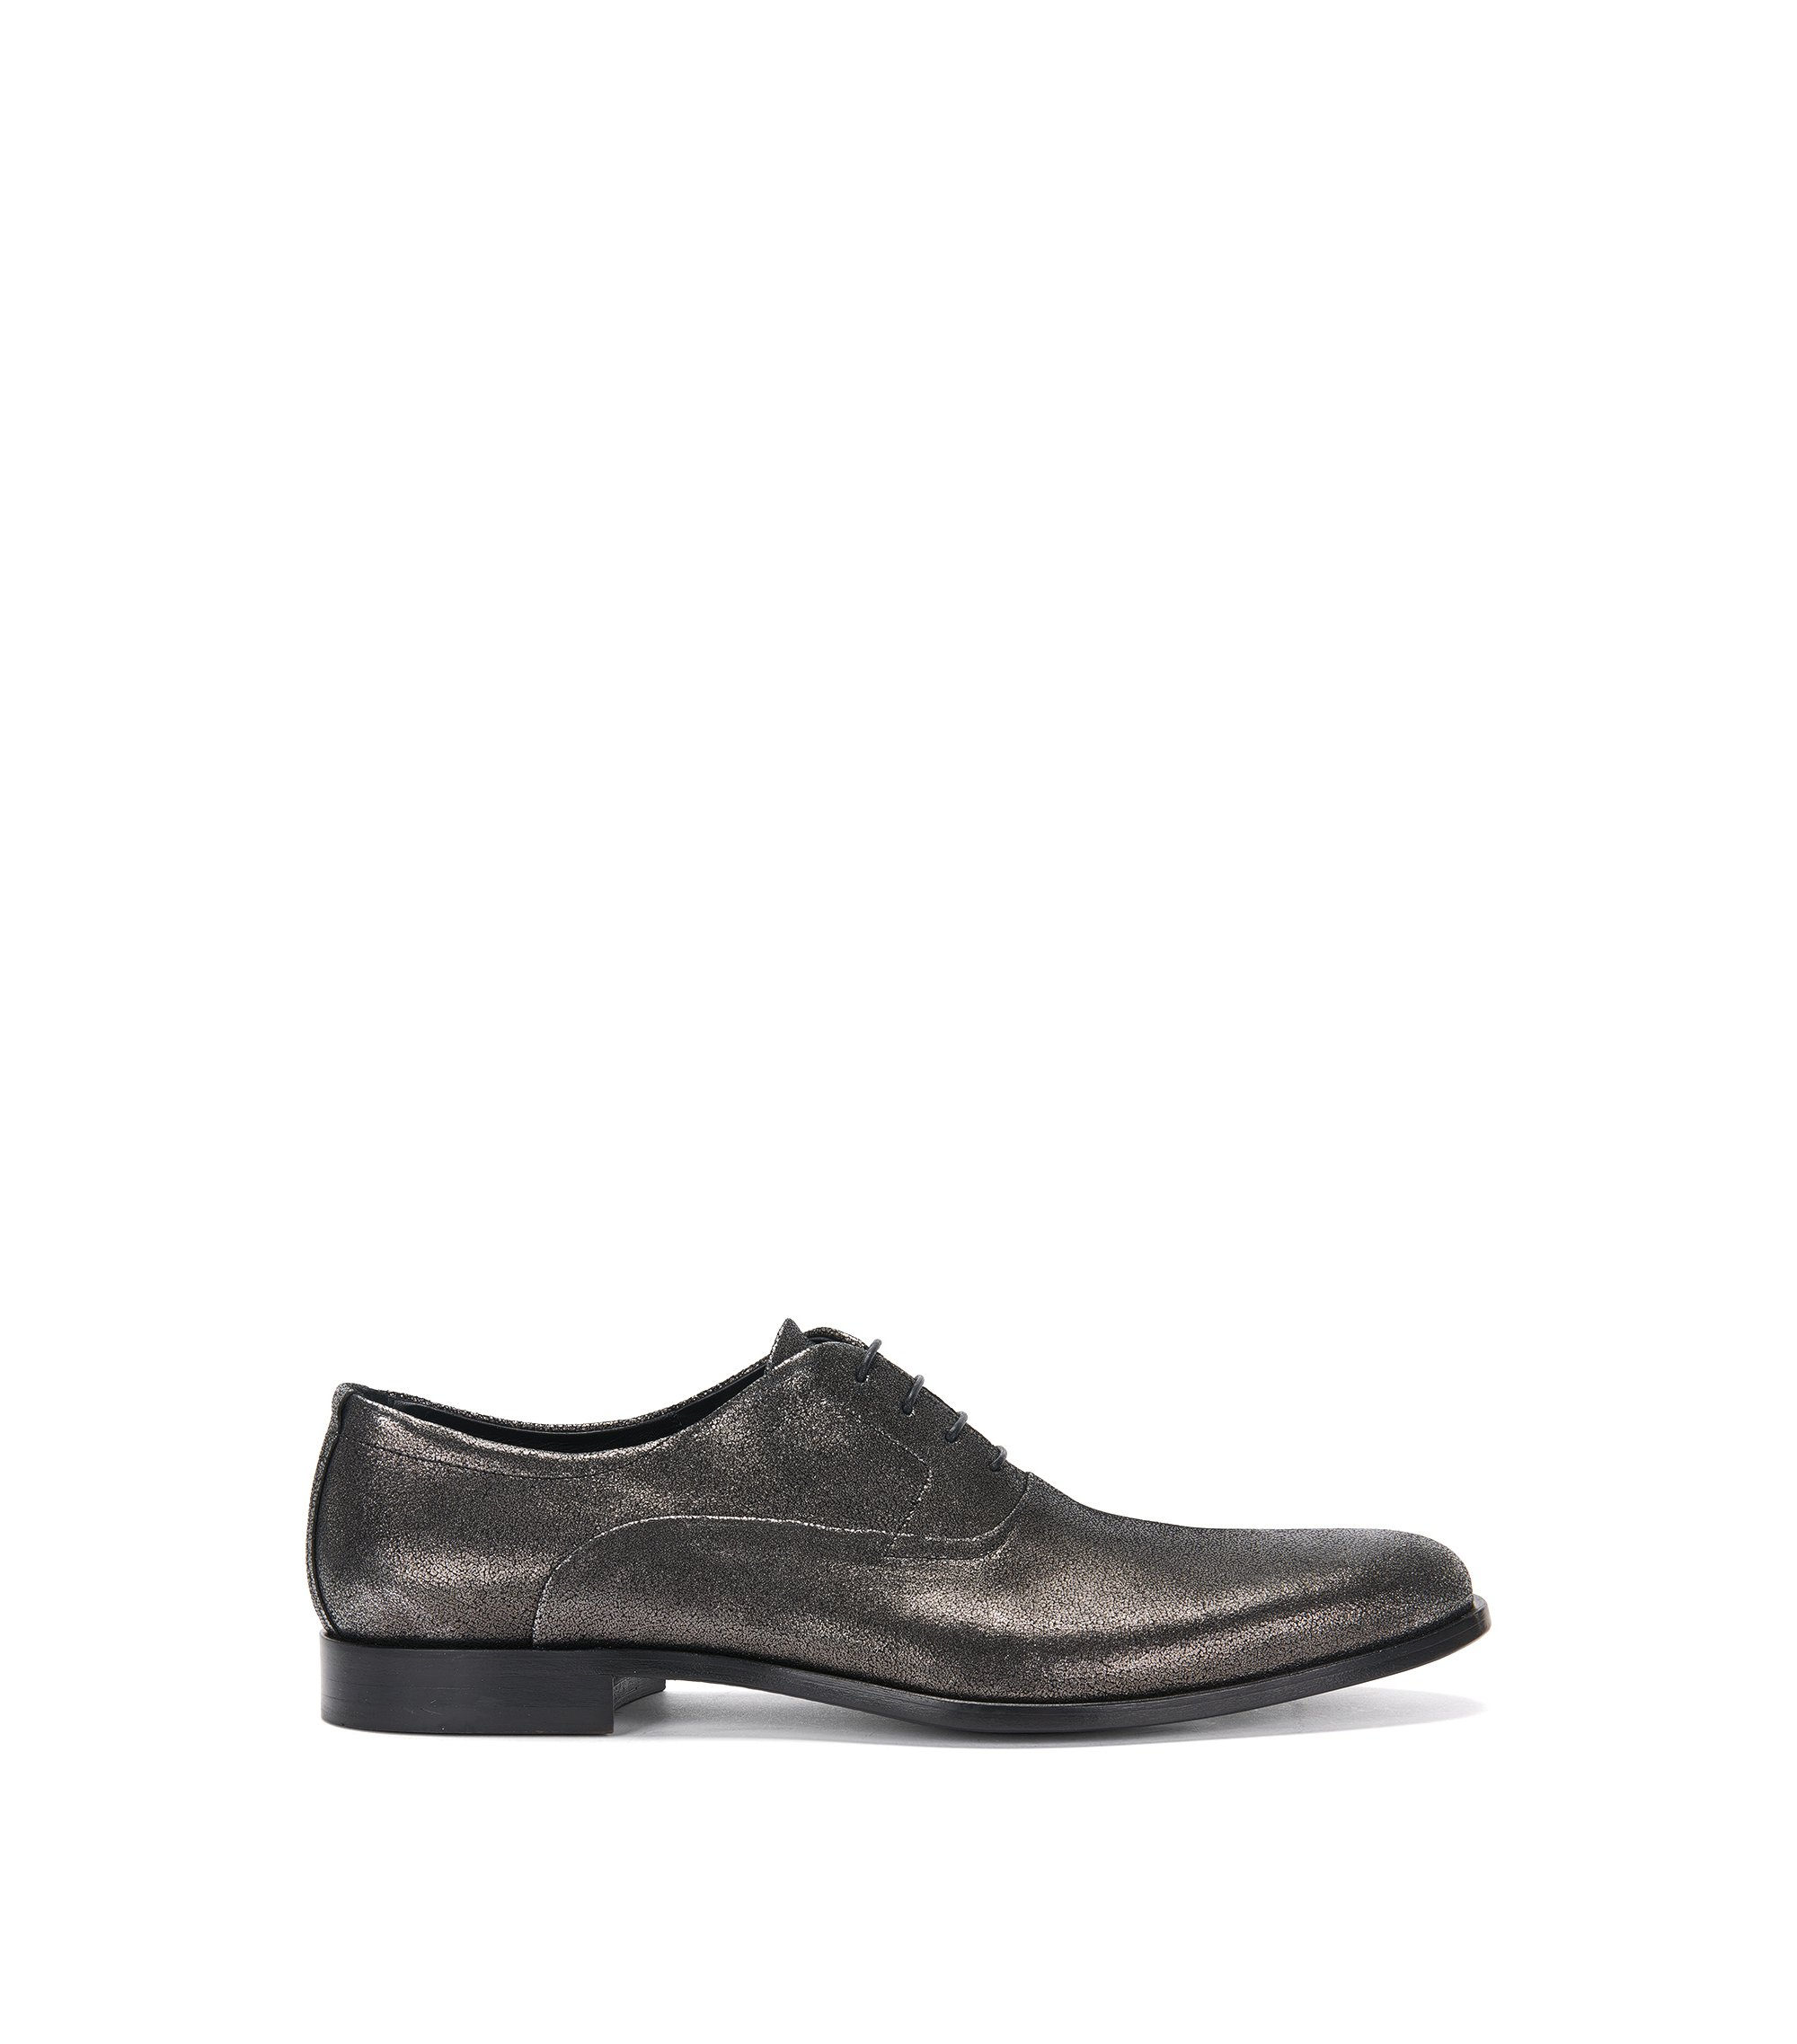 Italian Leather Suede Metallic Oxford Shoe | Sigma Oxfr Sdg, Dark Grey